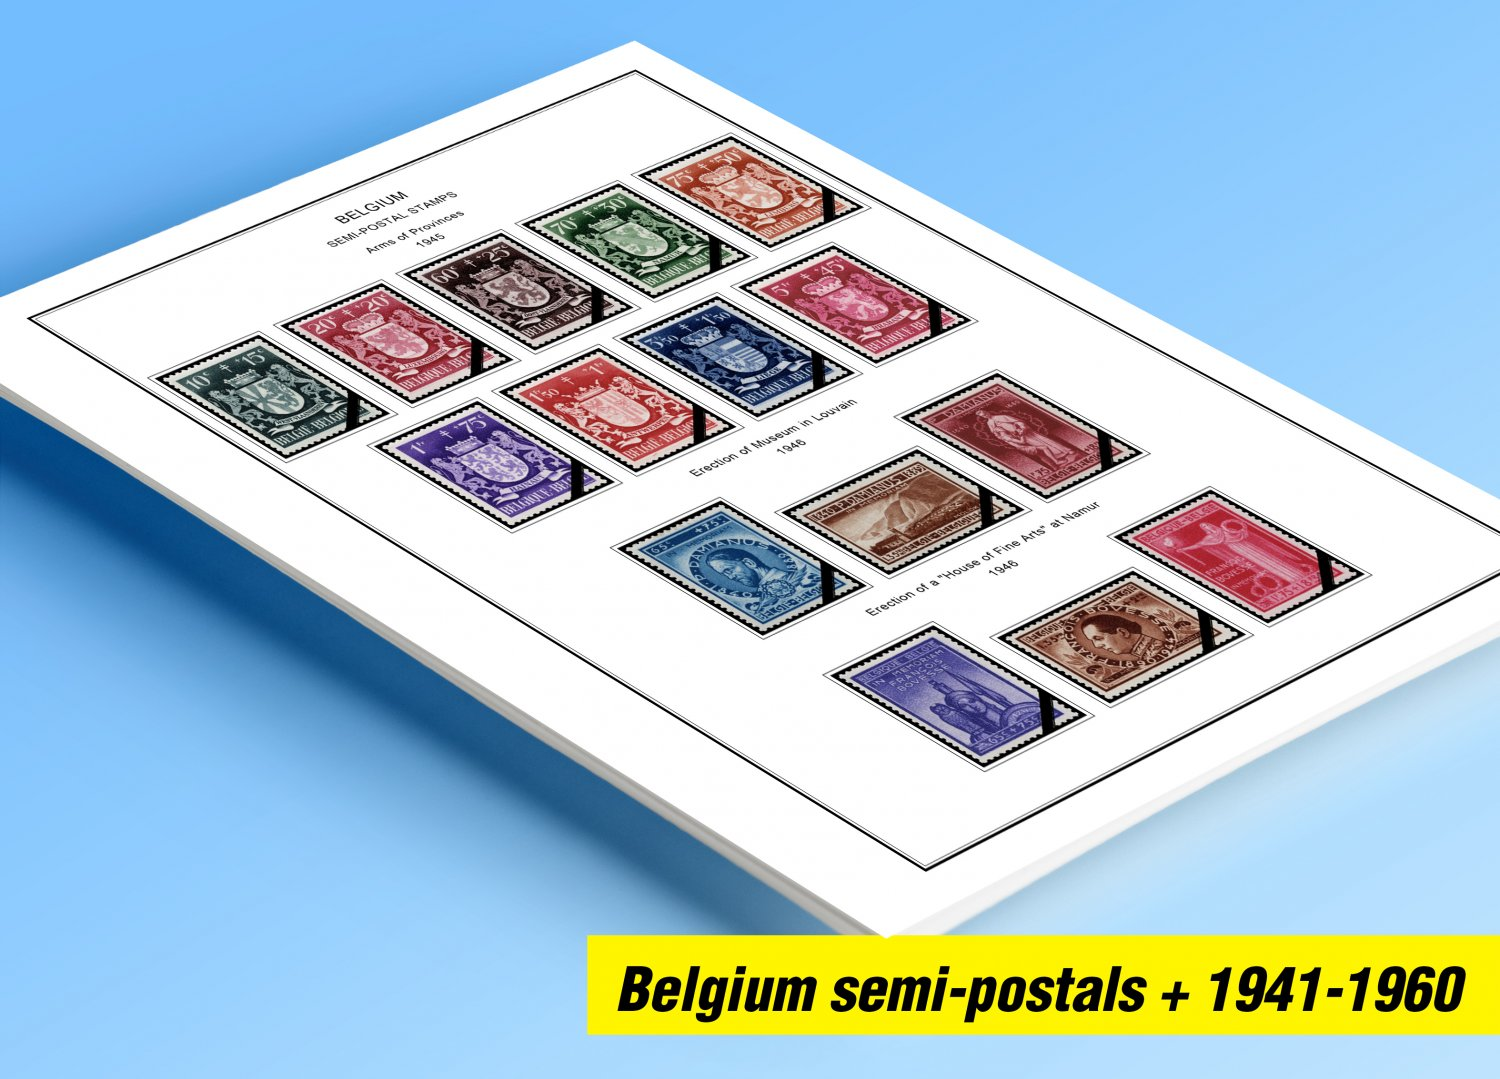 COLOR PRINTED BELGIUM SEMI-POSTALS 1941-1960 STAMP ALBUM PAGES (54 illustrated pages)